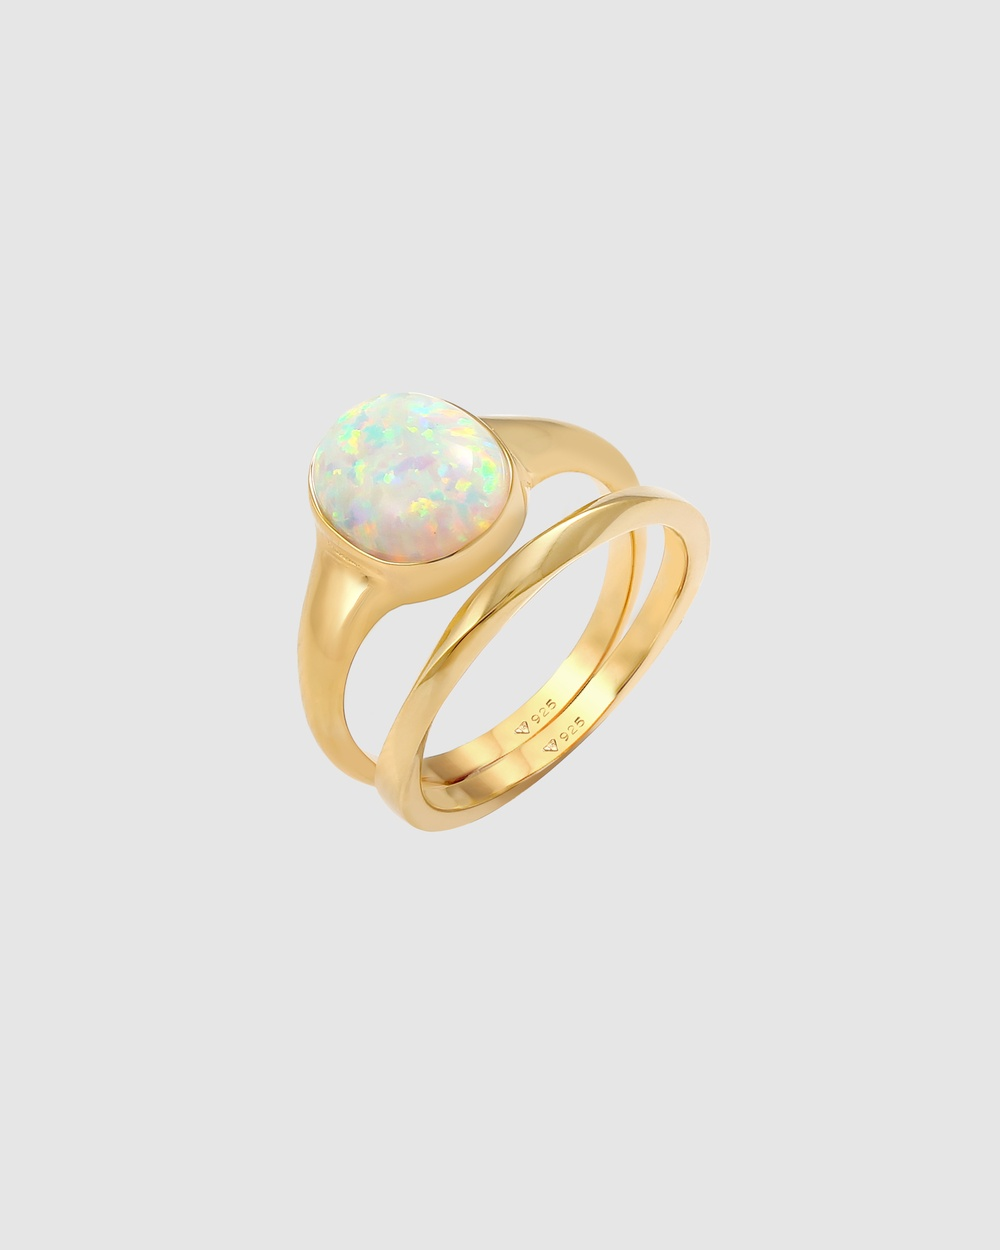 Elli Jewelry Ring Set Classic Opal Basic Twist in 925 Sterling Silver Gold Plated Jewellery Gold